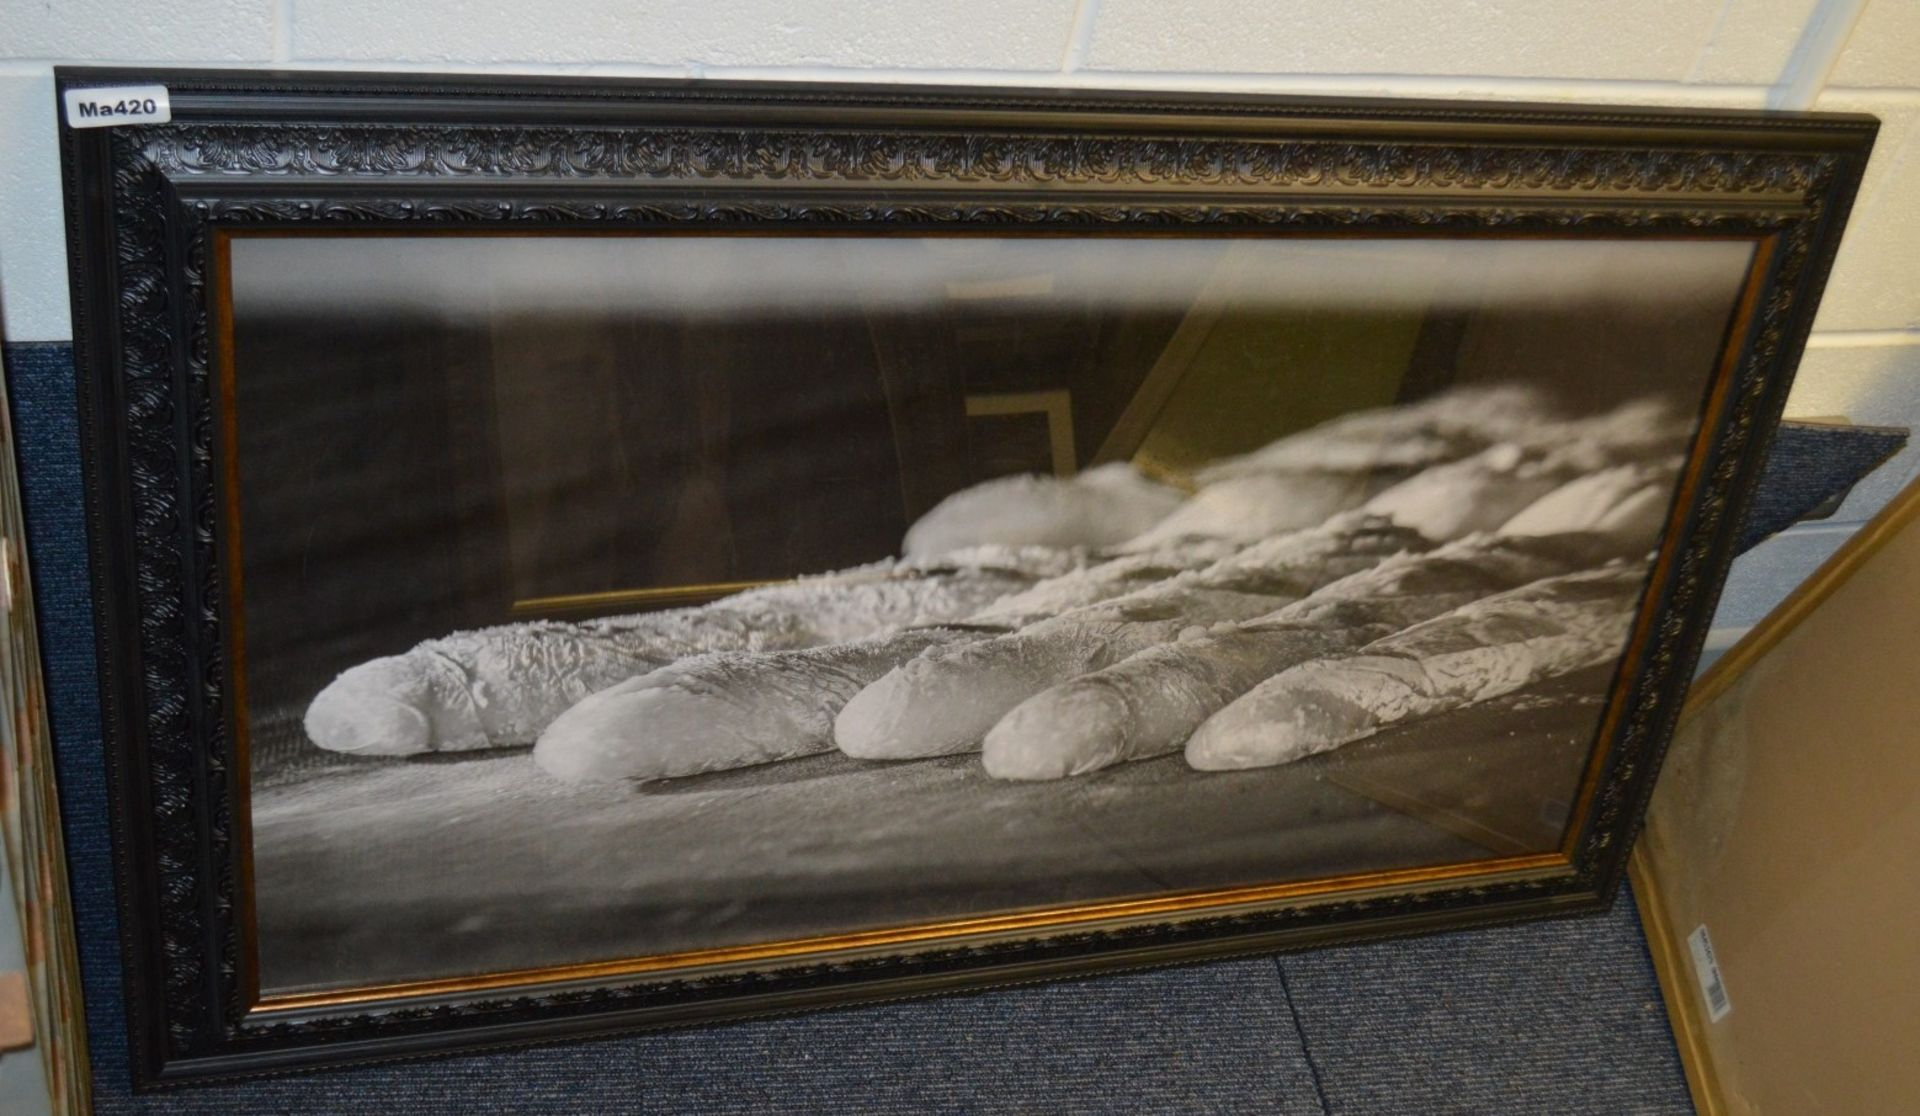 Lot 7432 - Assortment Of 8 x Framed Pictures - Various Sizes - Ref: Ma420 - CL481 - Location: Altrincham